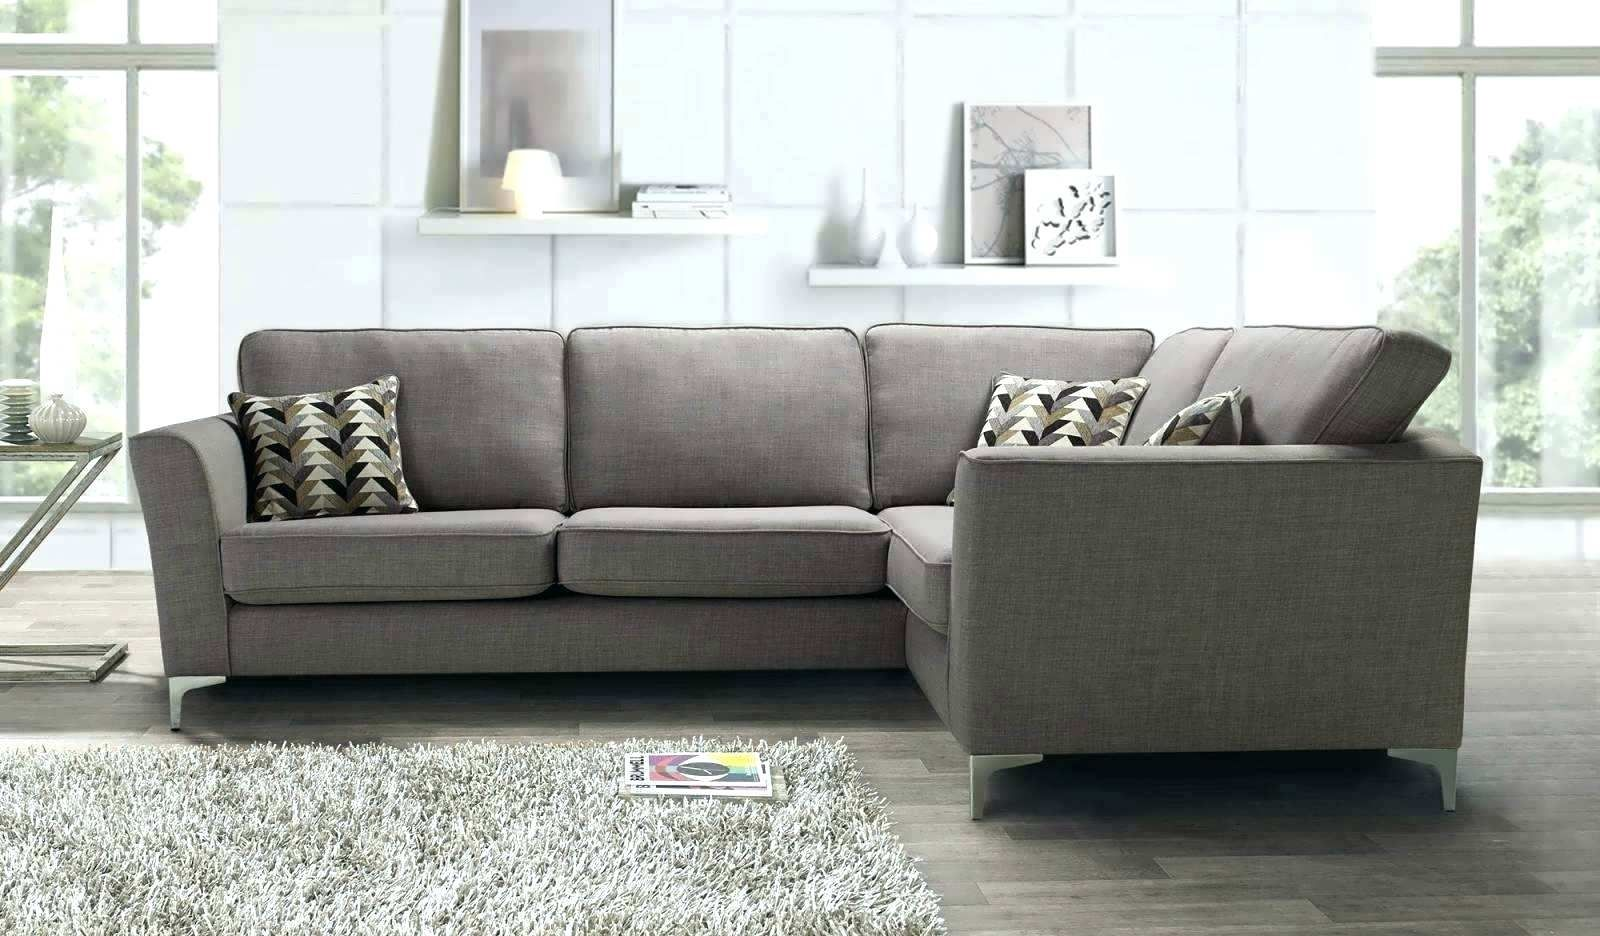 Fabric Sectional Sofas Canada 2018 Popular Canada Sale Sectional Sofas Unique Home Inspiration